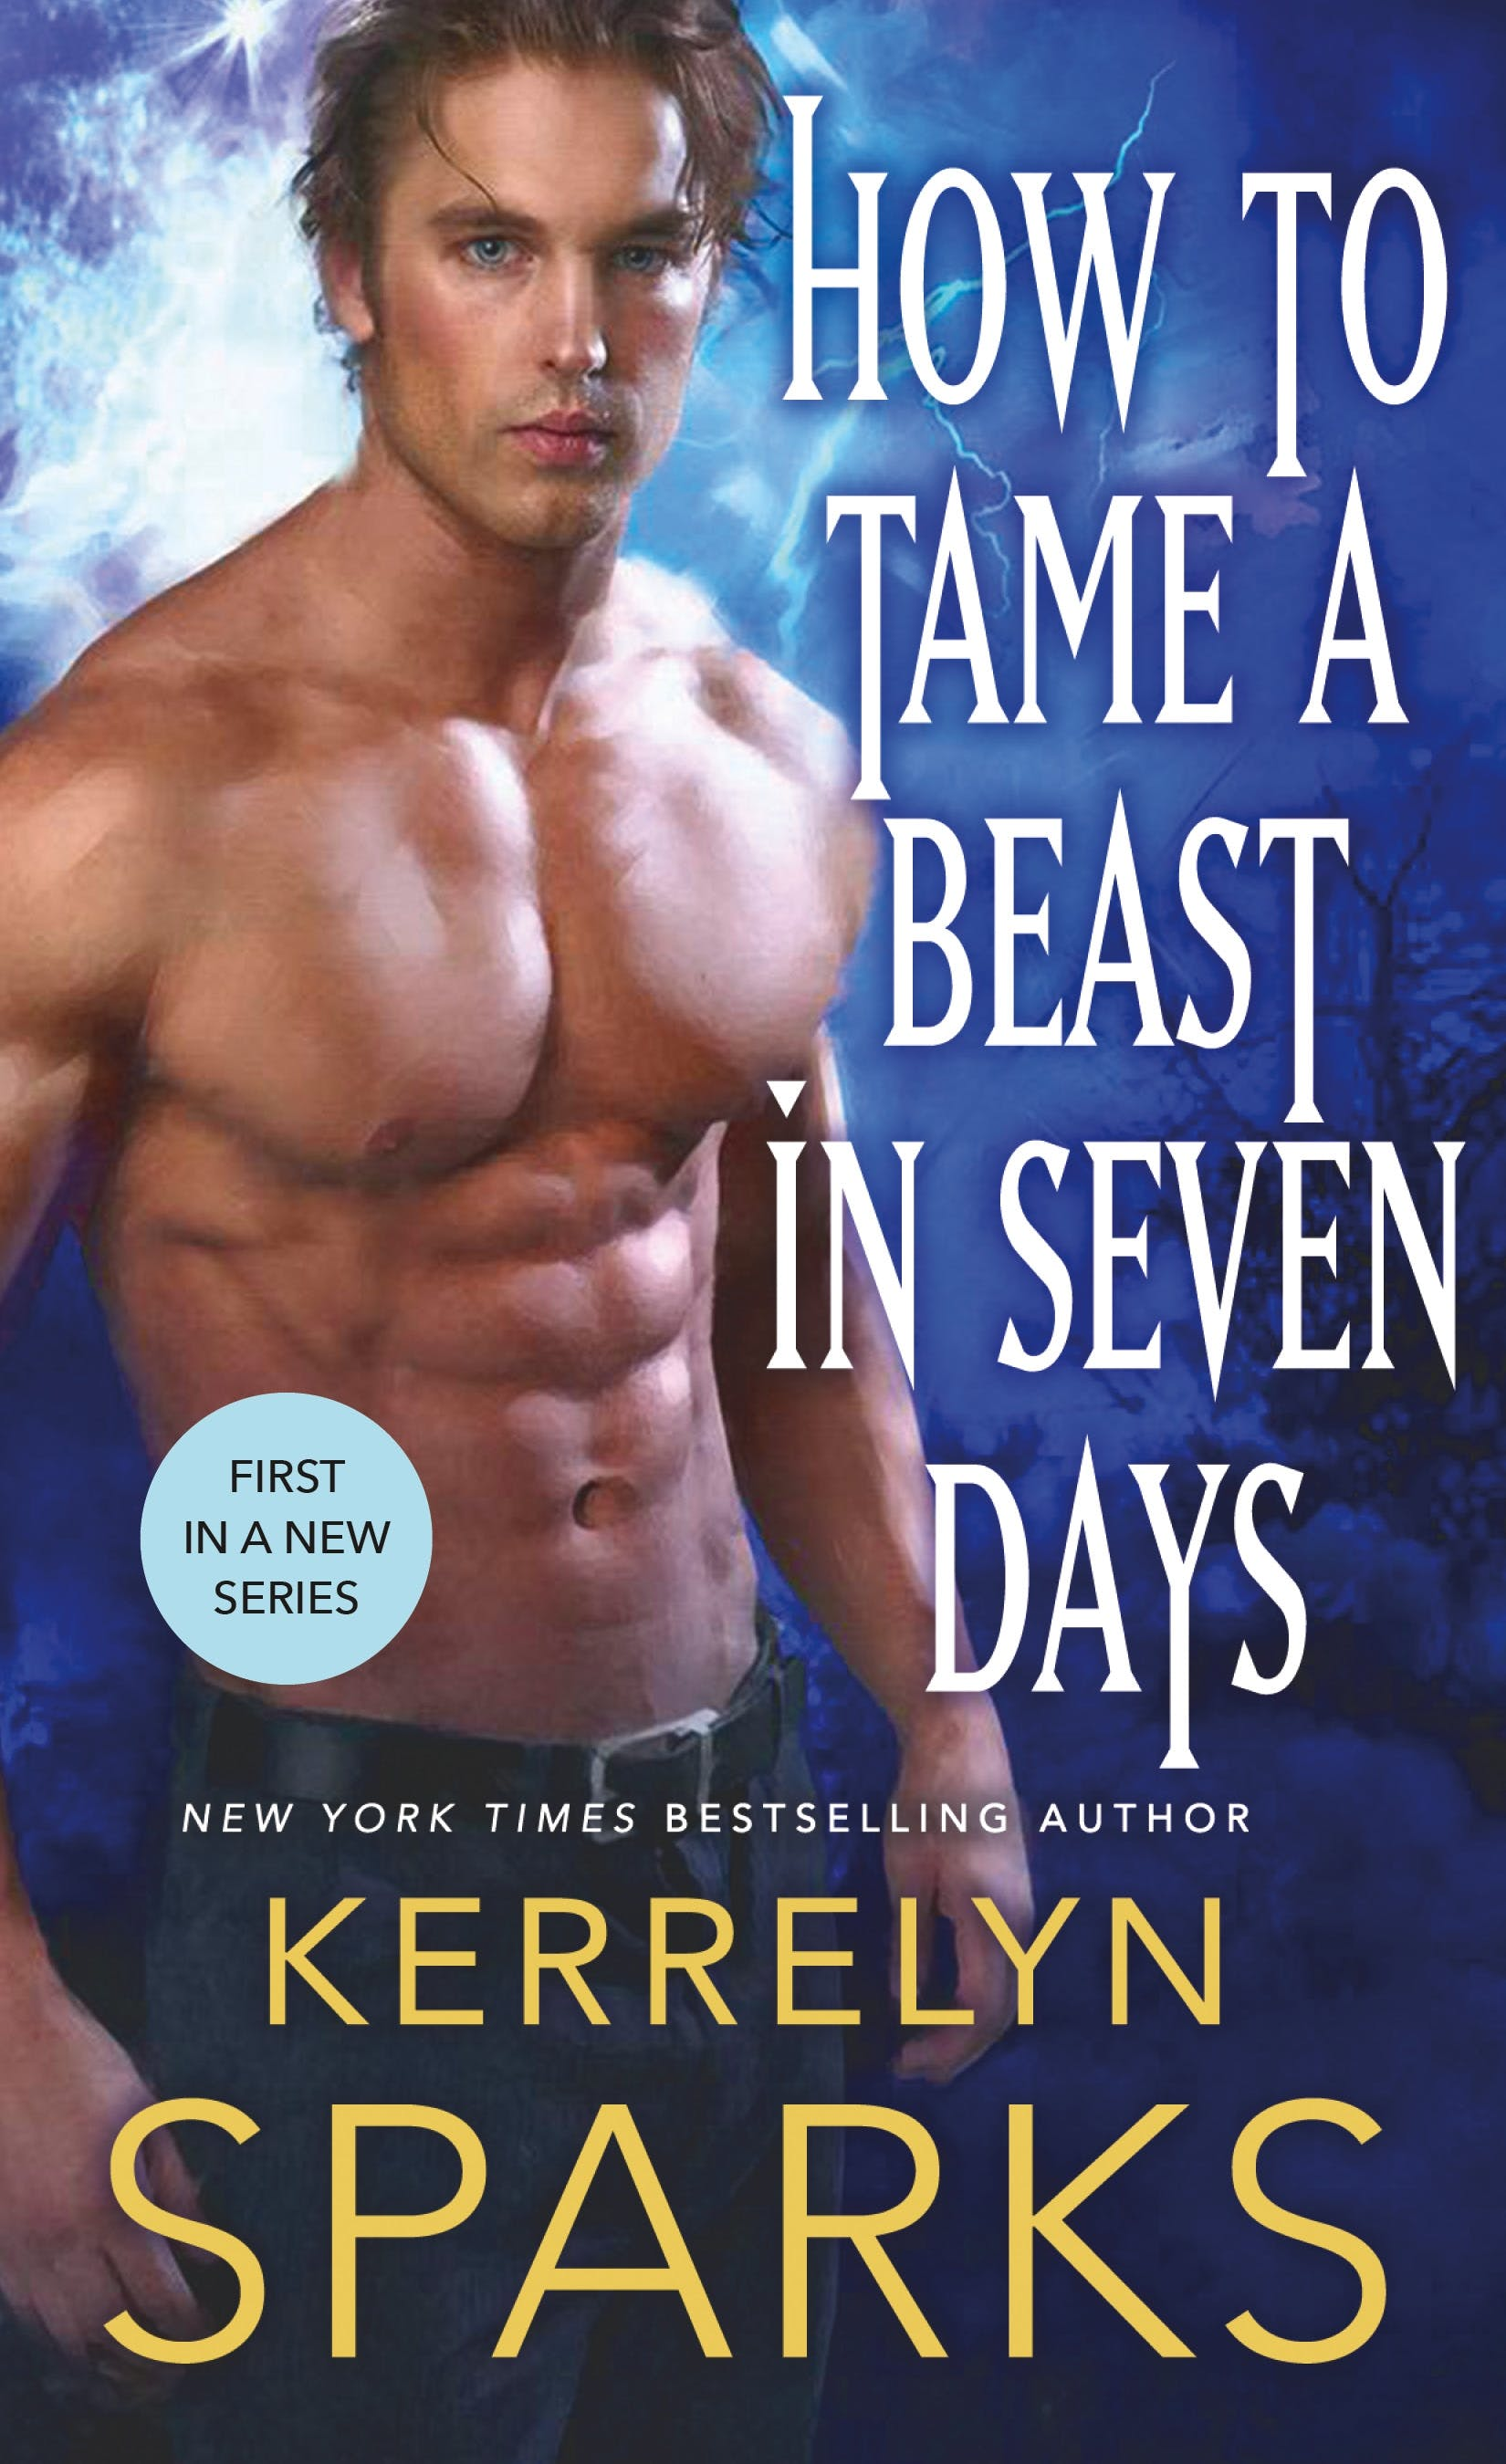 Image of How to Tame a Beast in Seven Days